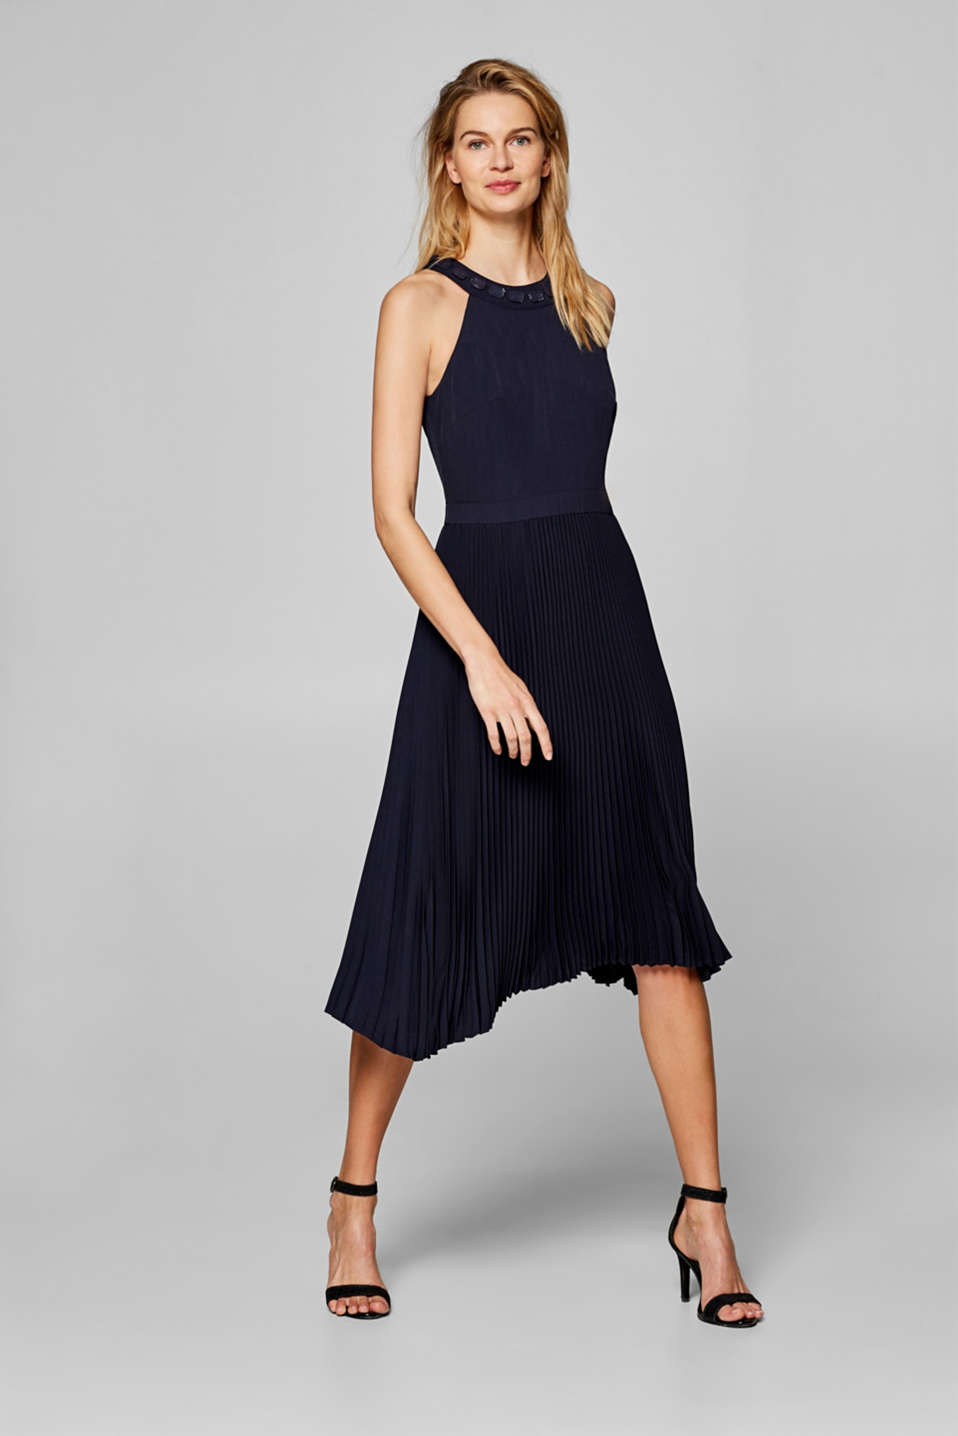 Esprit - Dress with a pleated skirt and decorative stones